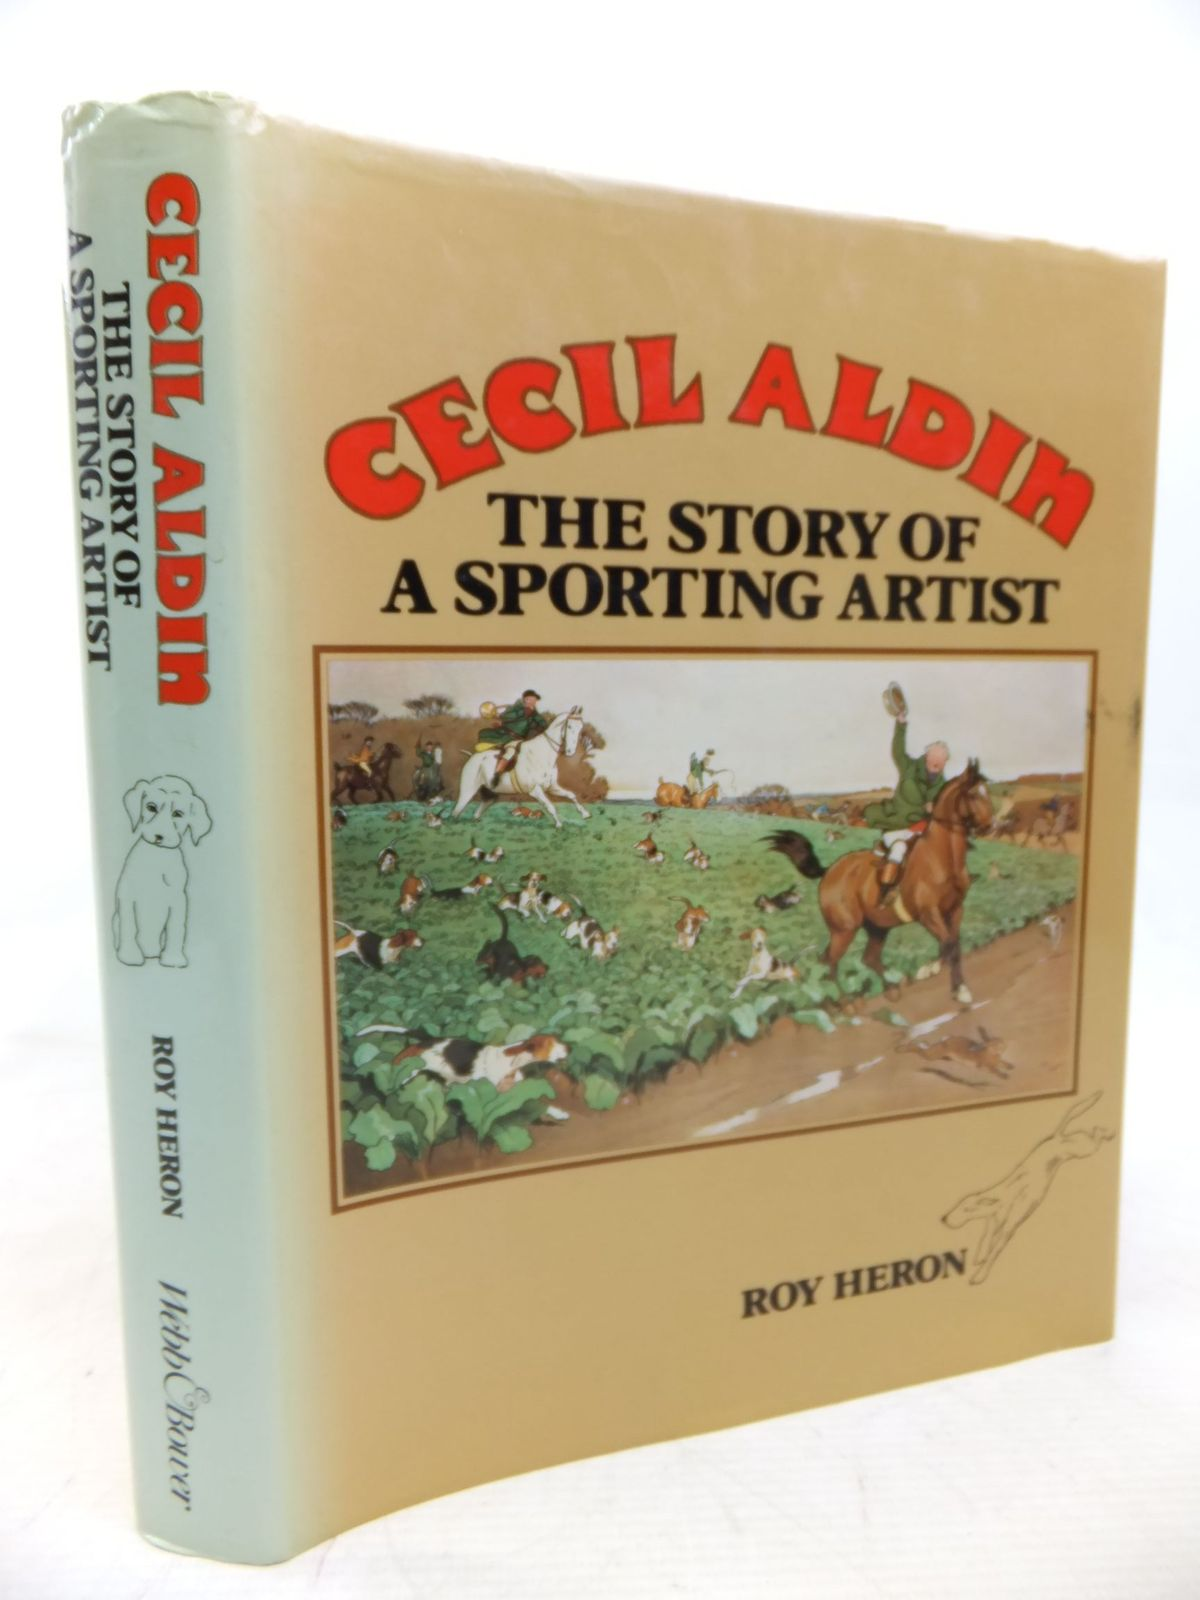 Photo of CECIL ALDIN - THE STORY OF A SPORTING ARTIST written by Heron, Roy illustrated by Aldin, Cecil published by Webb & Bower (STOCK CODE: 2115149)  for sale by Stella & Rose's Books